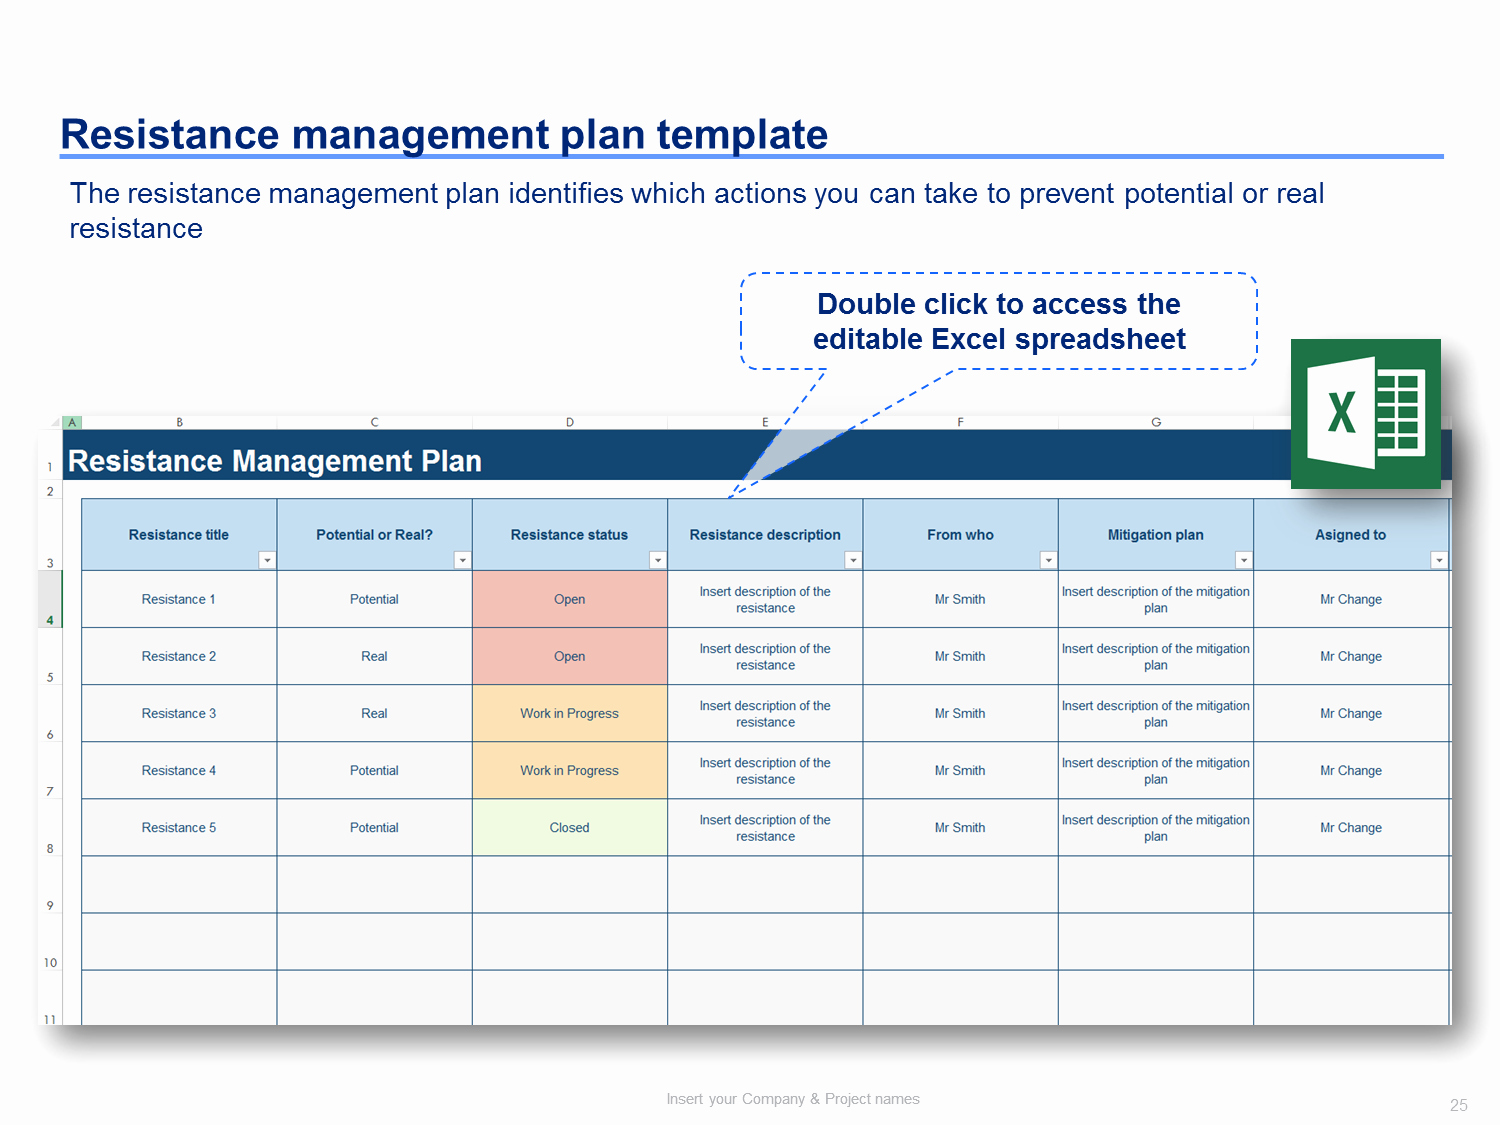 Change Management Plan Template Luxury Change Management toolkit Including Models Plans